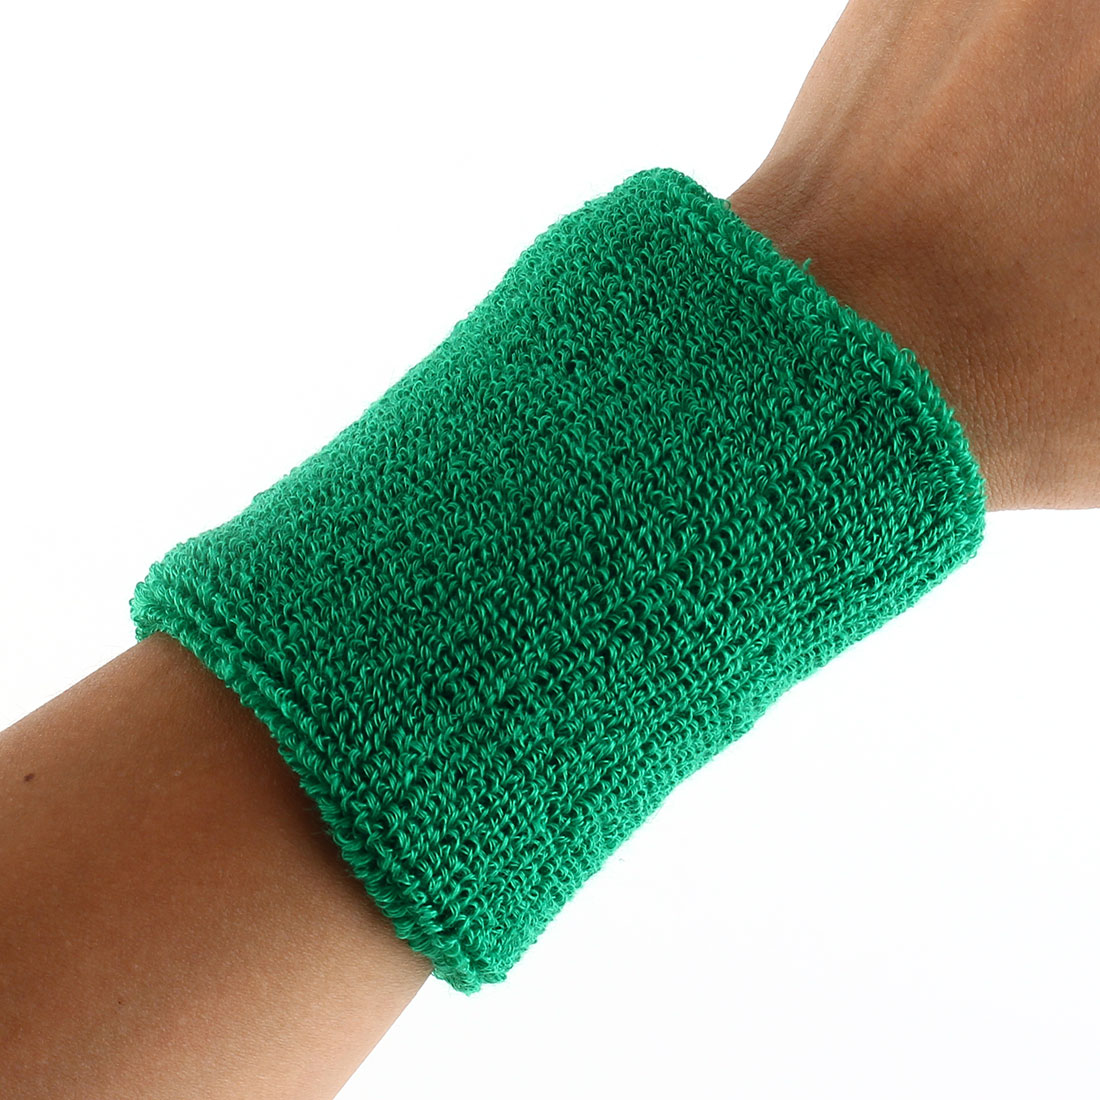 Exercises Gym Running Elastic Breathable Hand Protector Bandage Sweatband Wristband Sport Wrist Green Pair2pcs